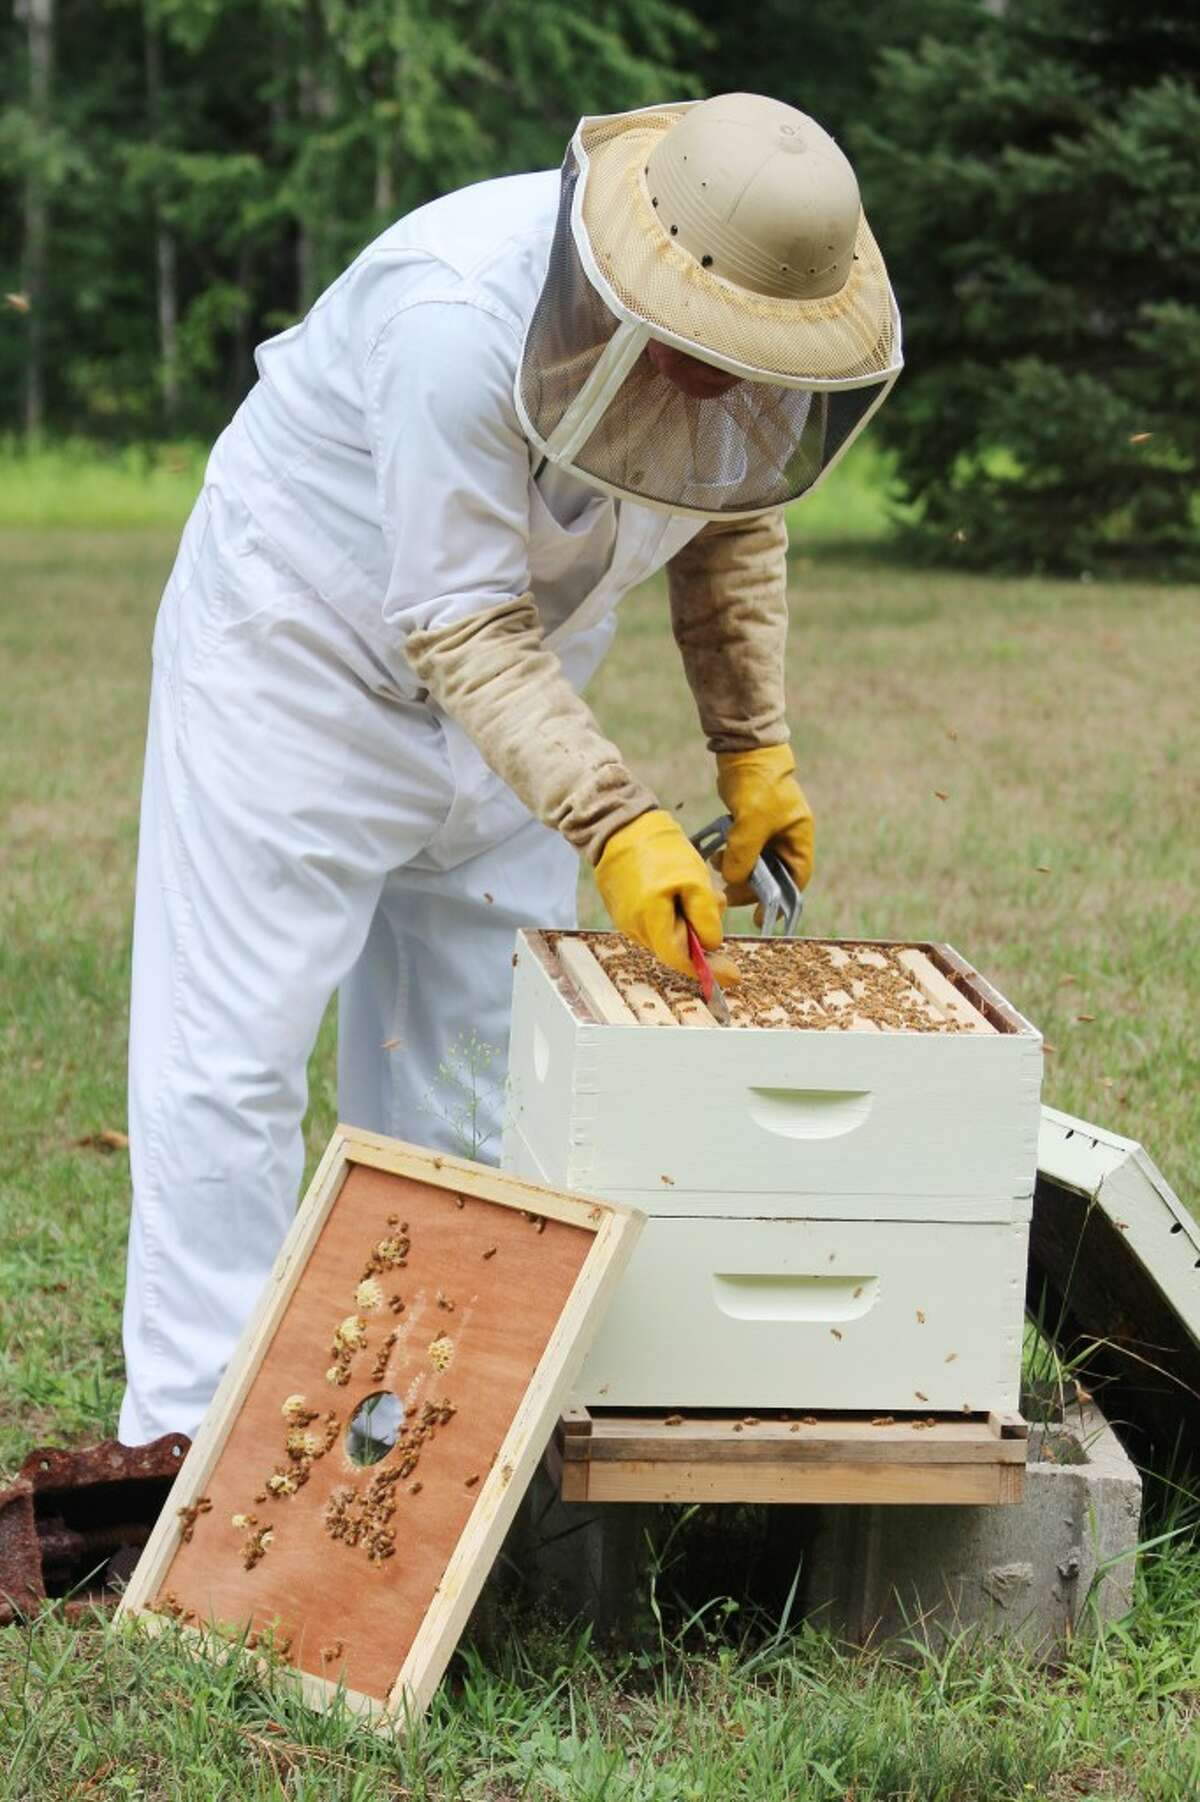 TENDING BEES: Each section of a bee hive can produce 3 pounds of honey per year.